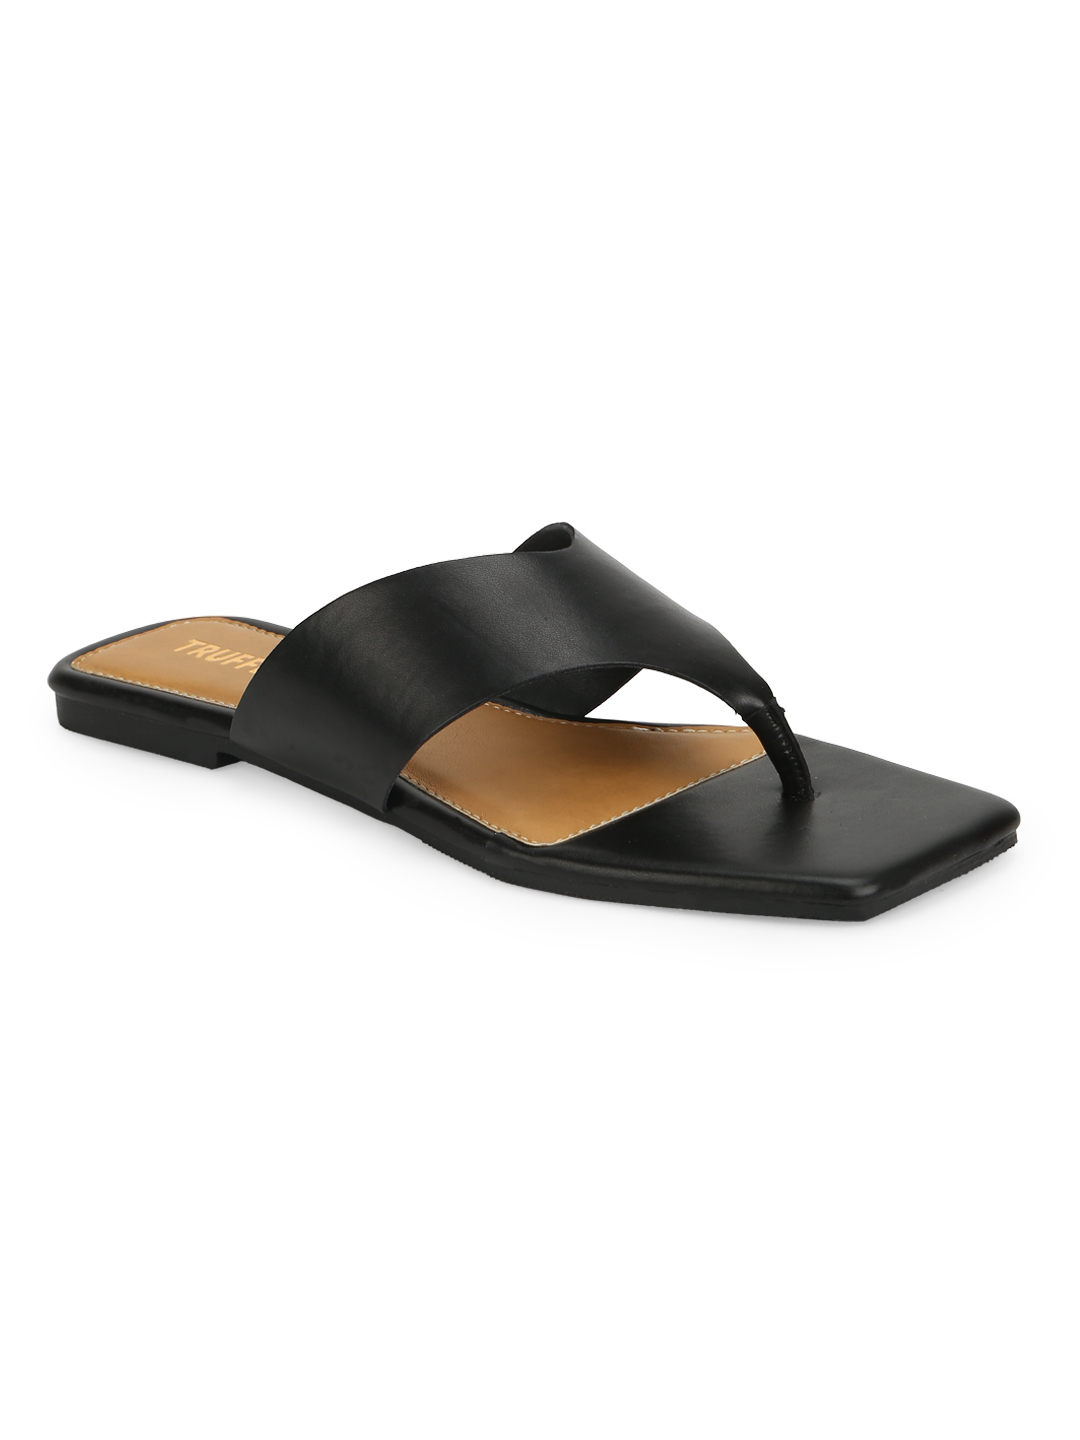 Truffle Collection | Truffle Collection Black PU Square Toe Slippers